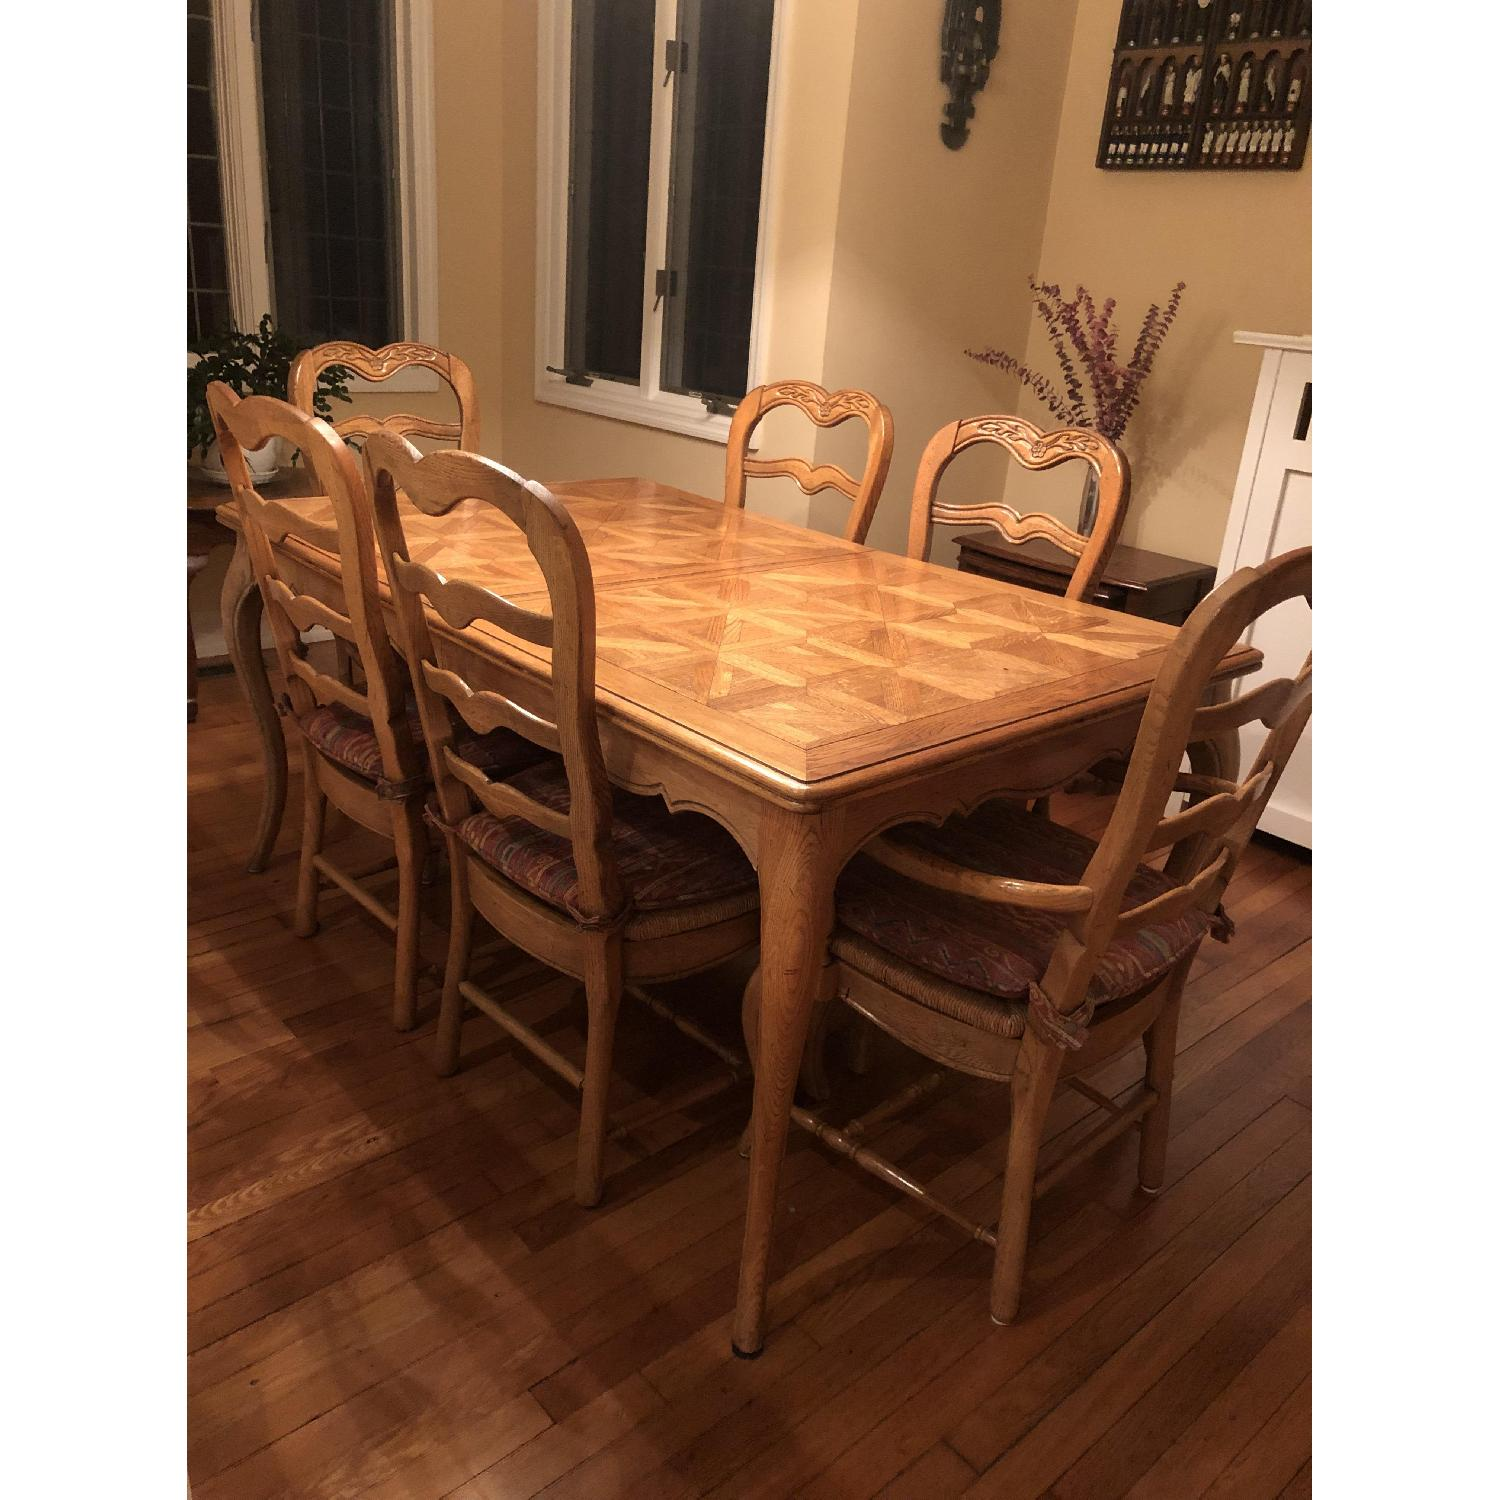 Provence Expandable Dining Table w/ 8 Chairs - image-3